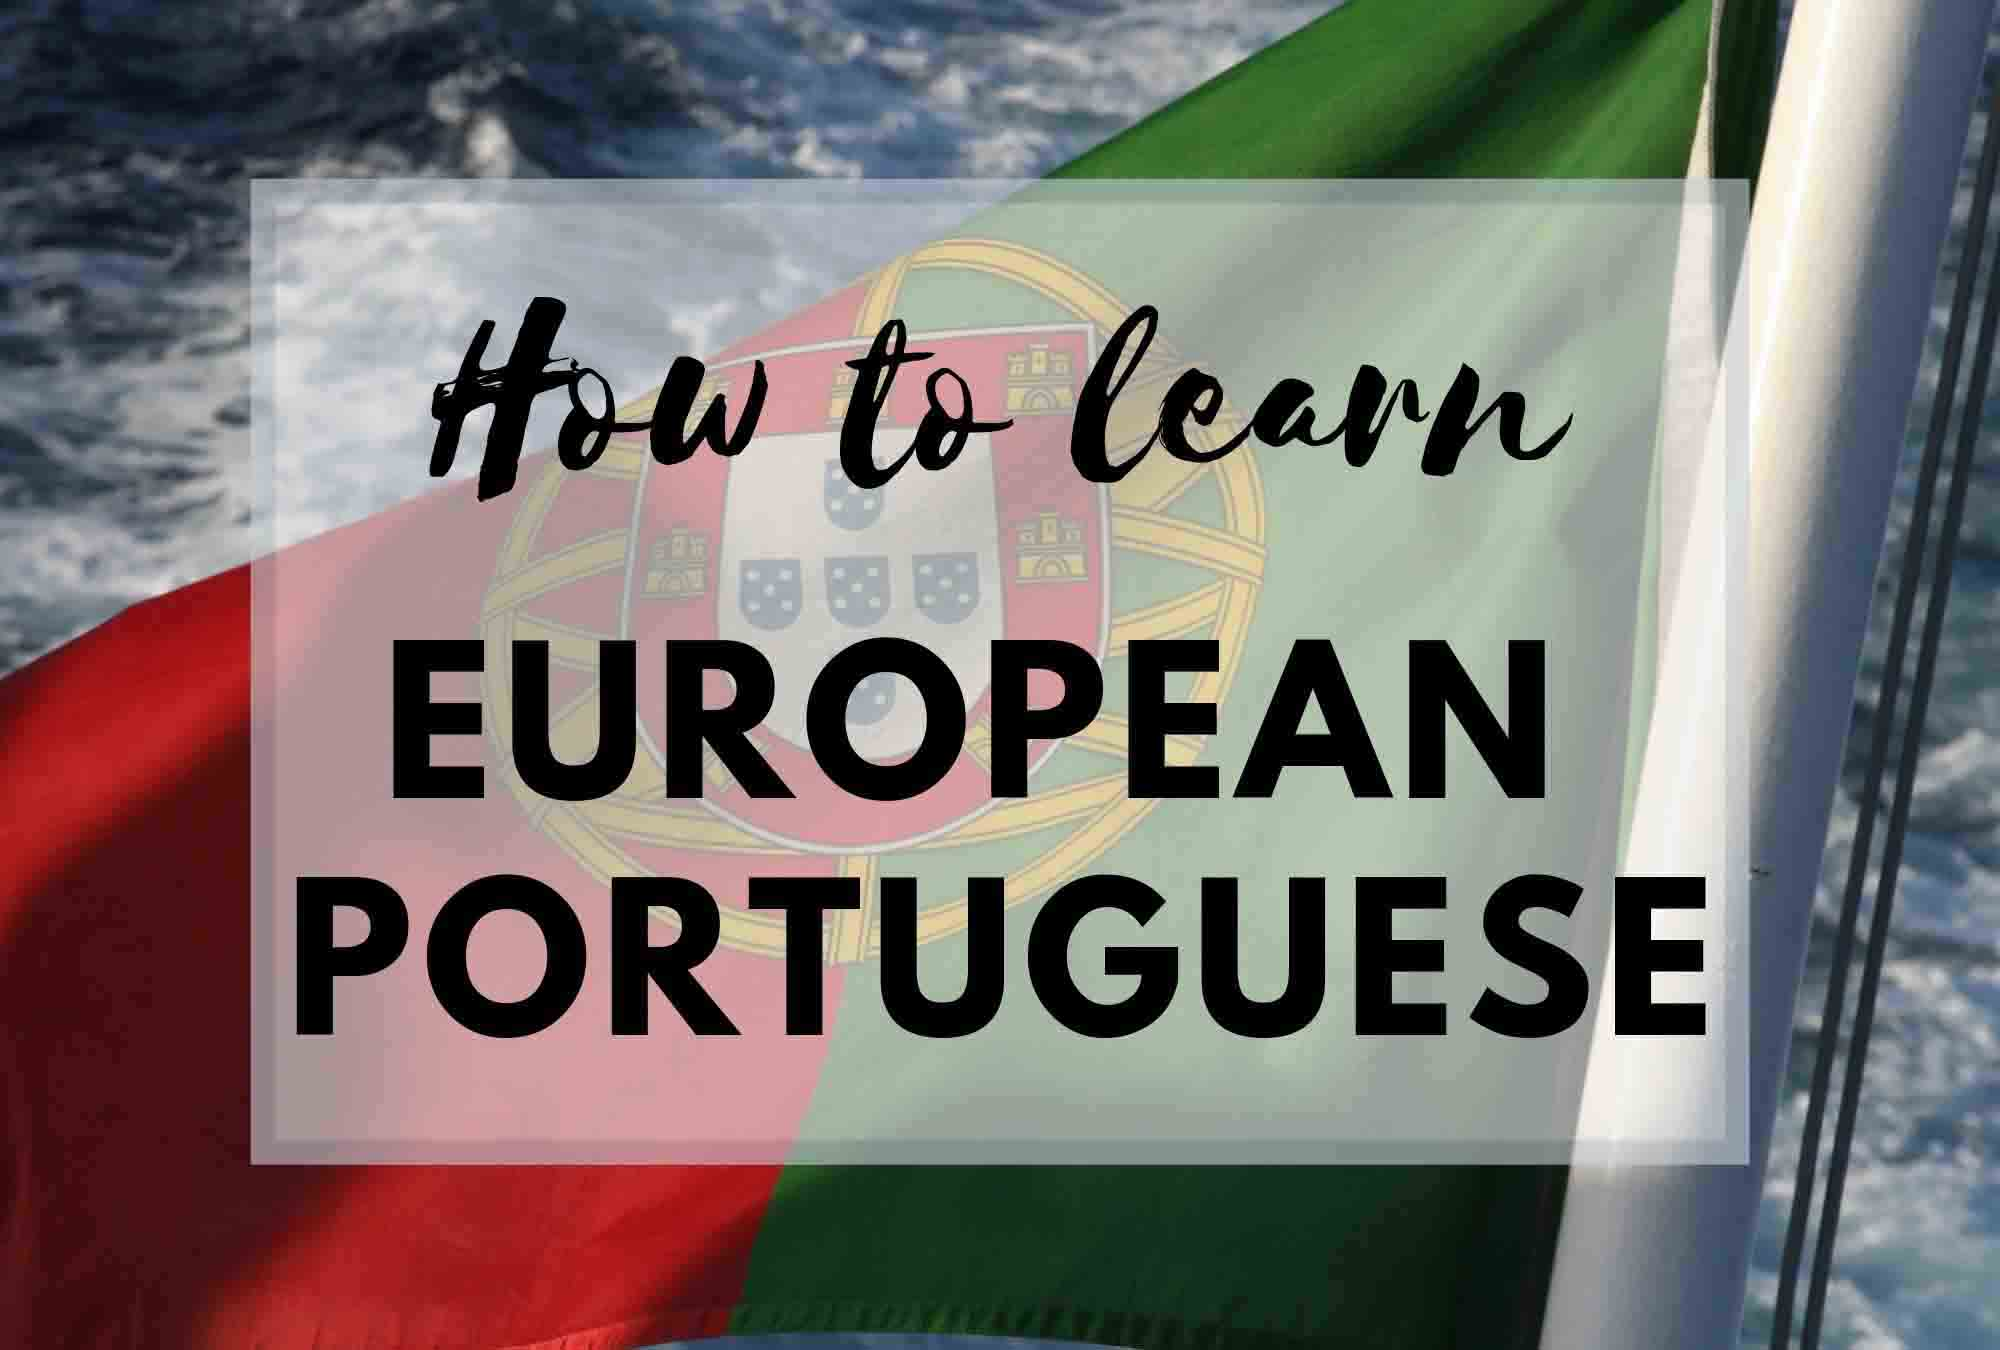 How to learn Portuguese banner